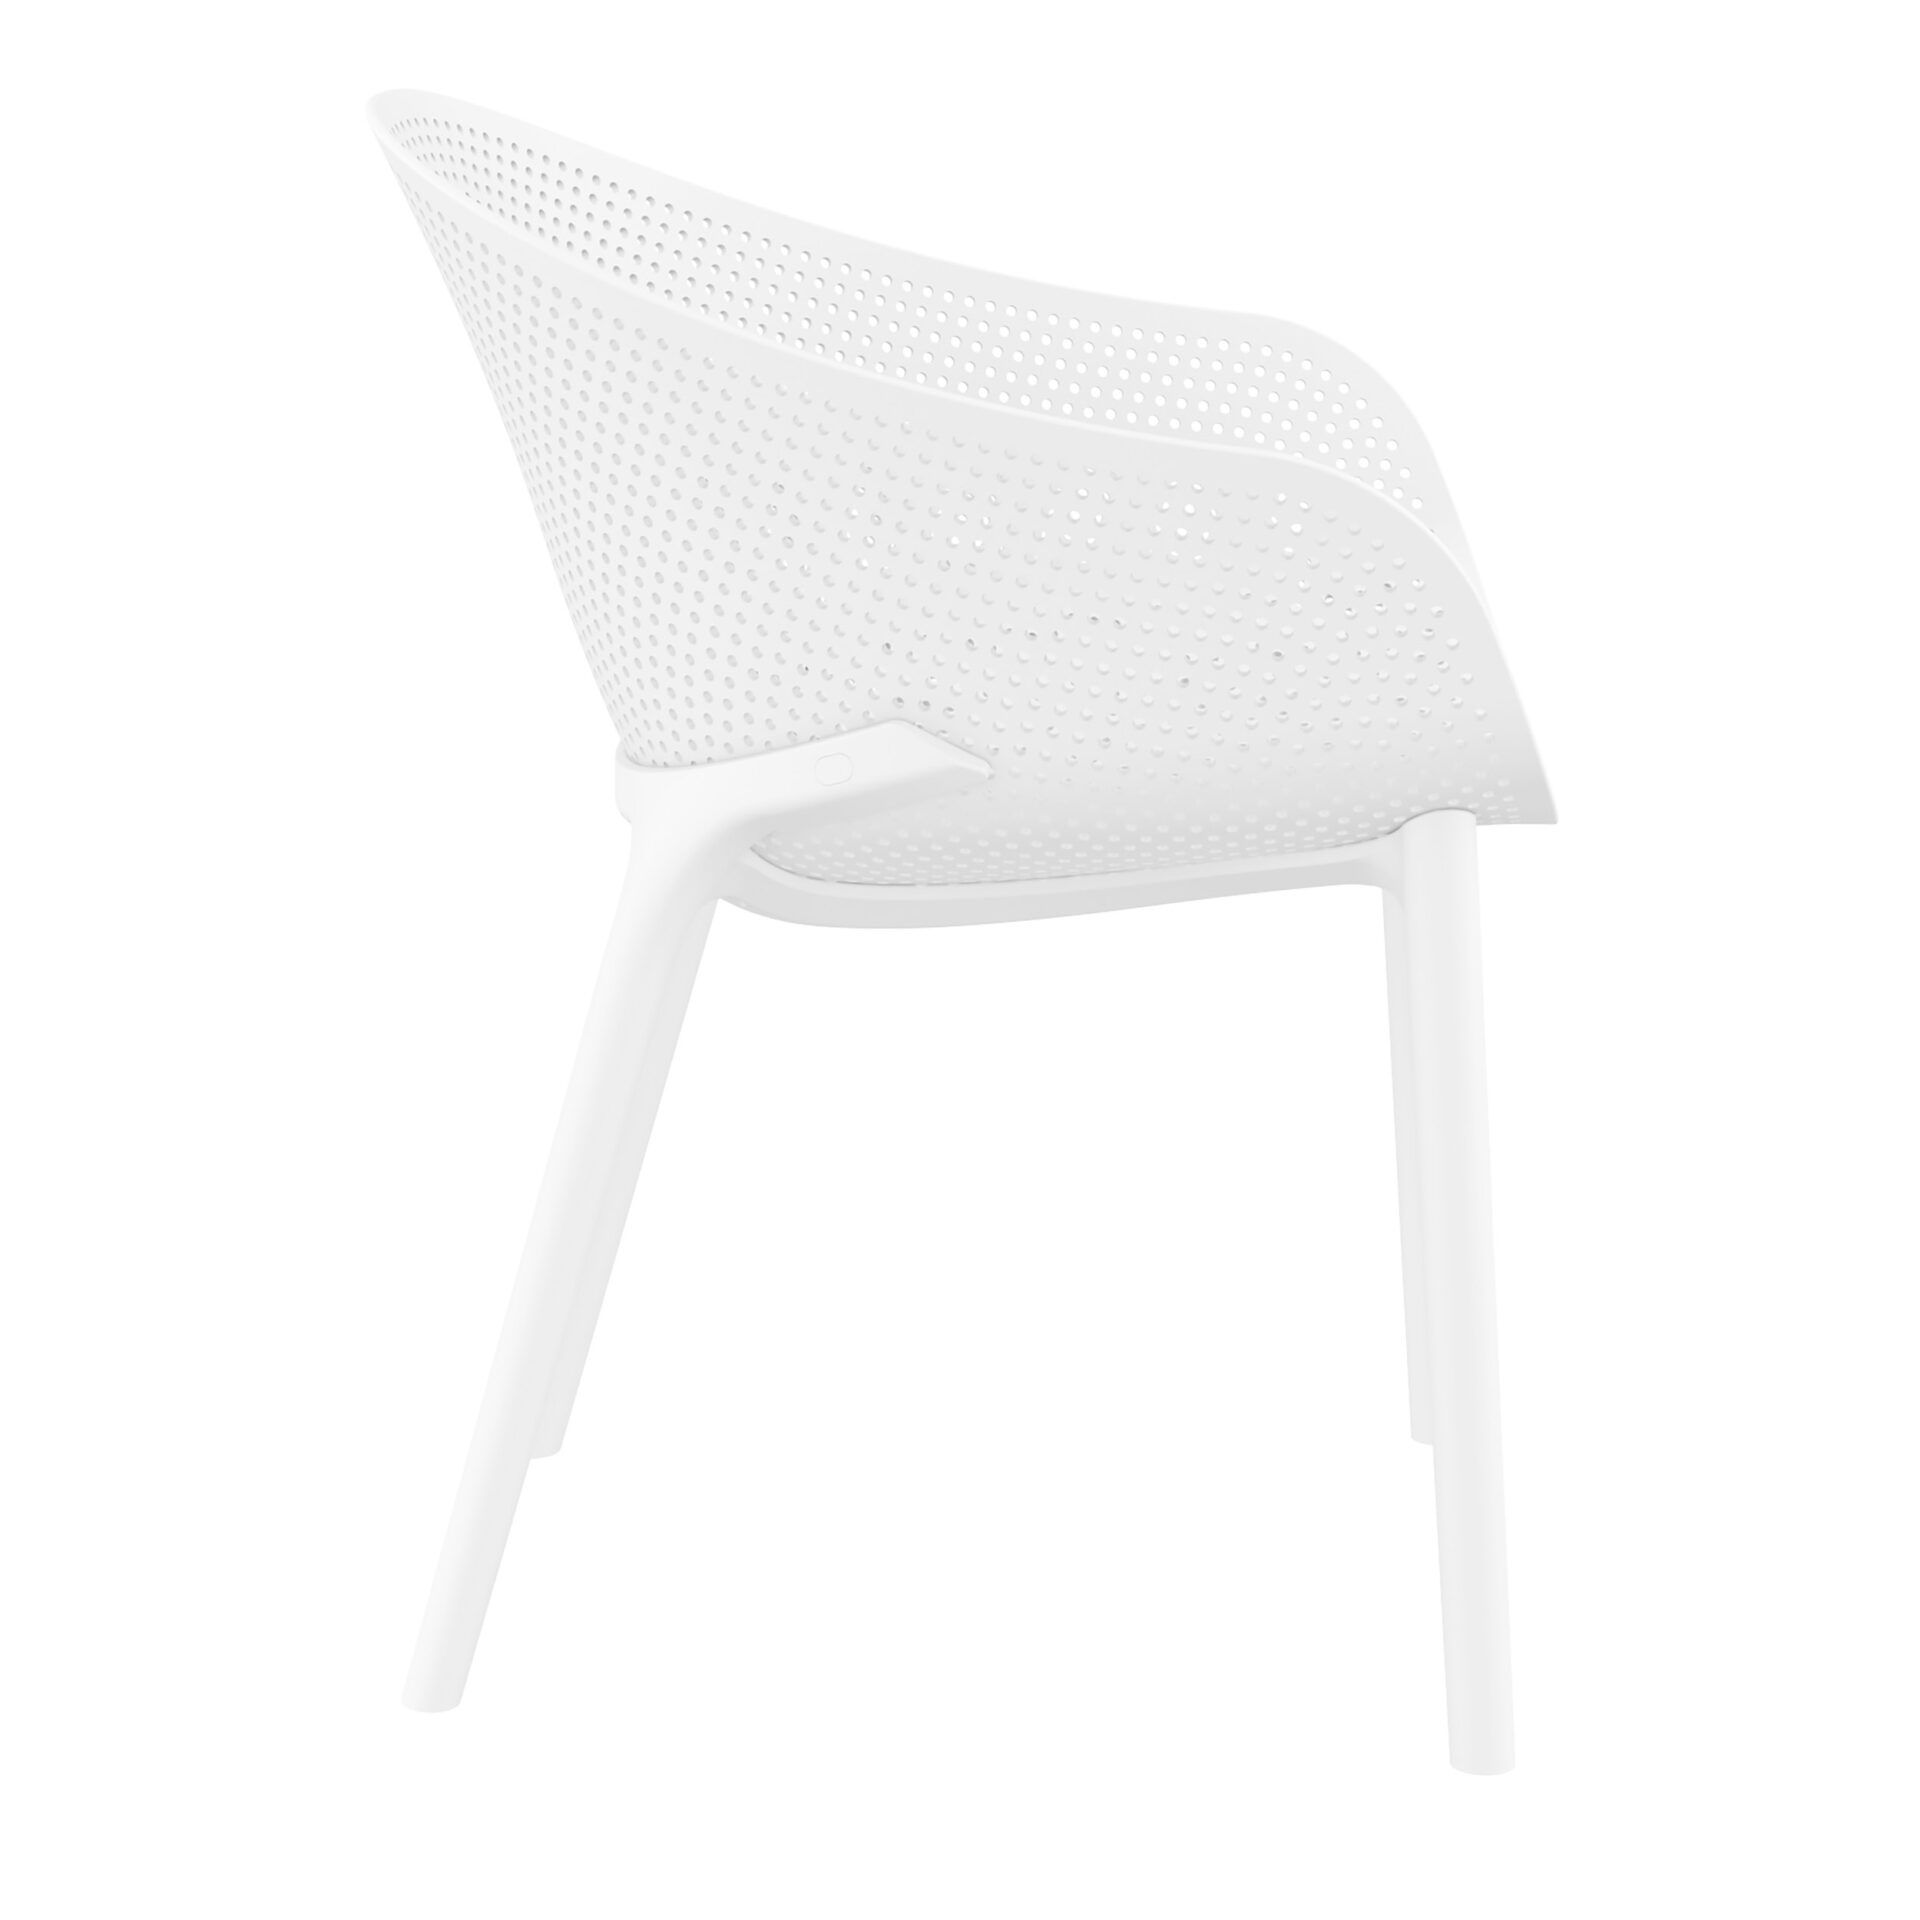 outdoor seating polypropylene sky chair white side